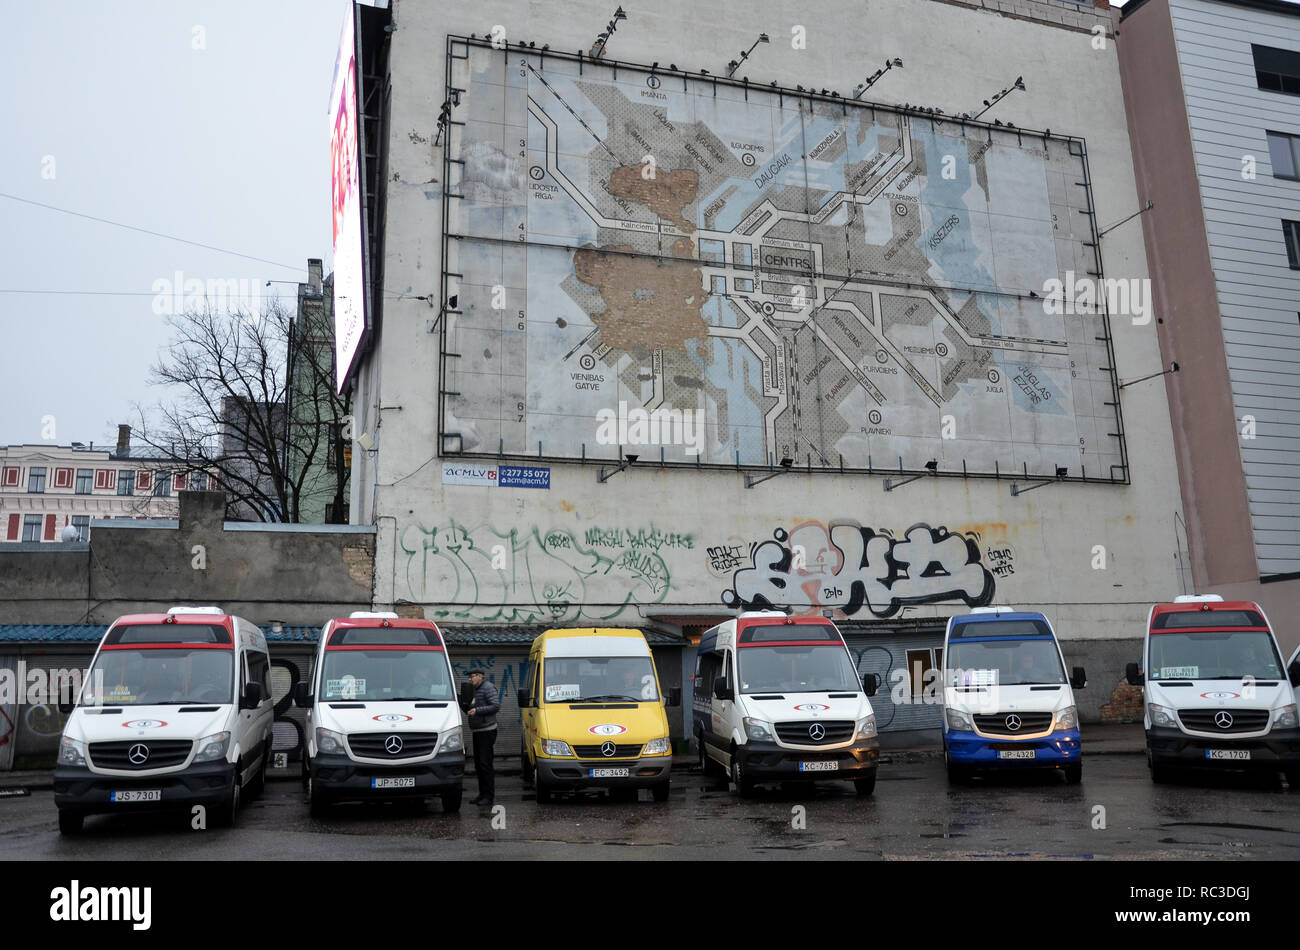 A map of Riga above marshrutka (shared taxis) parked at a central bus station, Riga, Republic of Latvia, Baltics, December 2018 Stock Photo